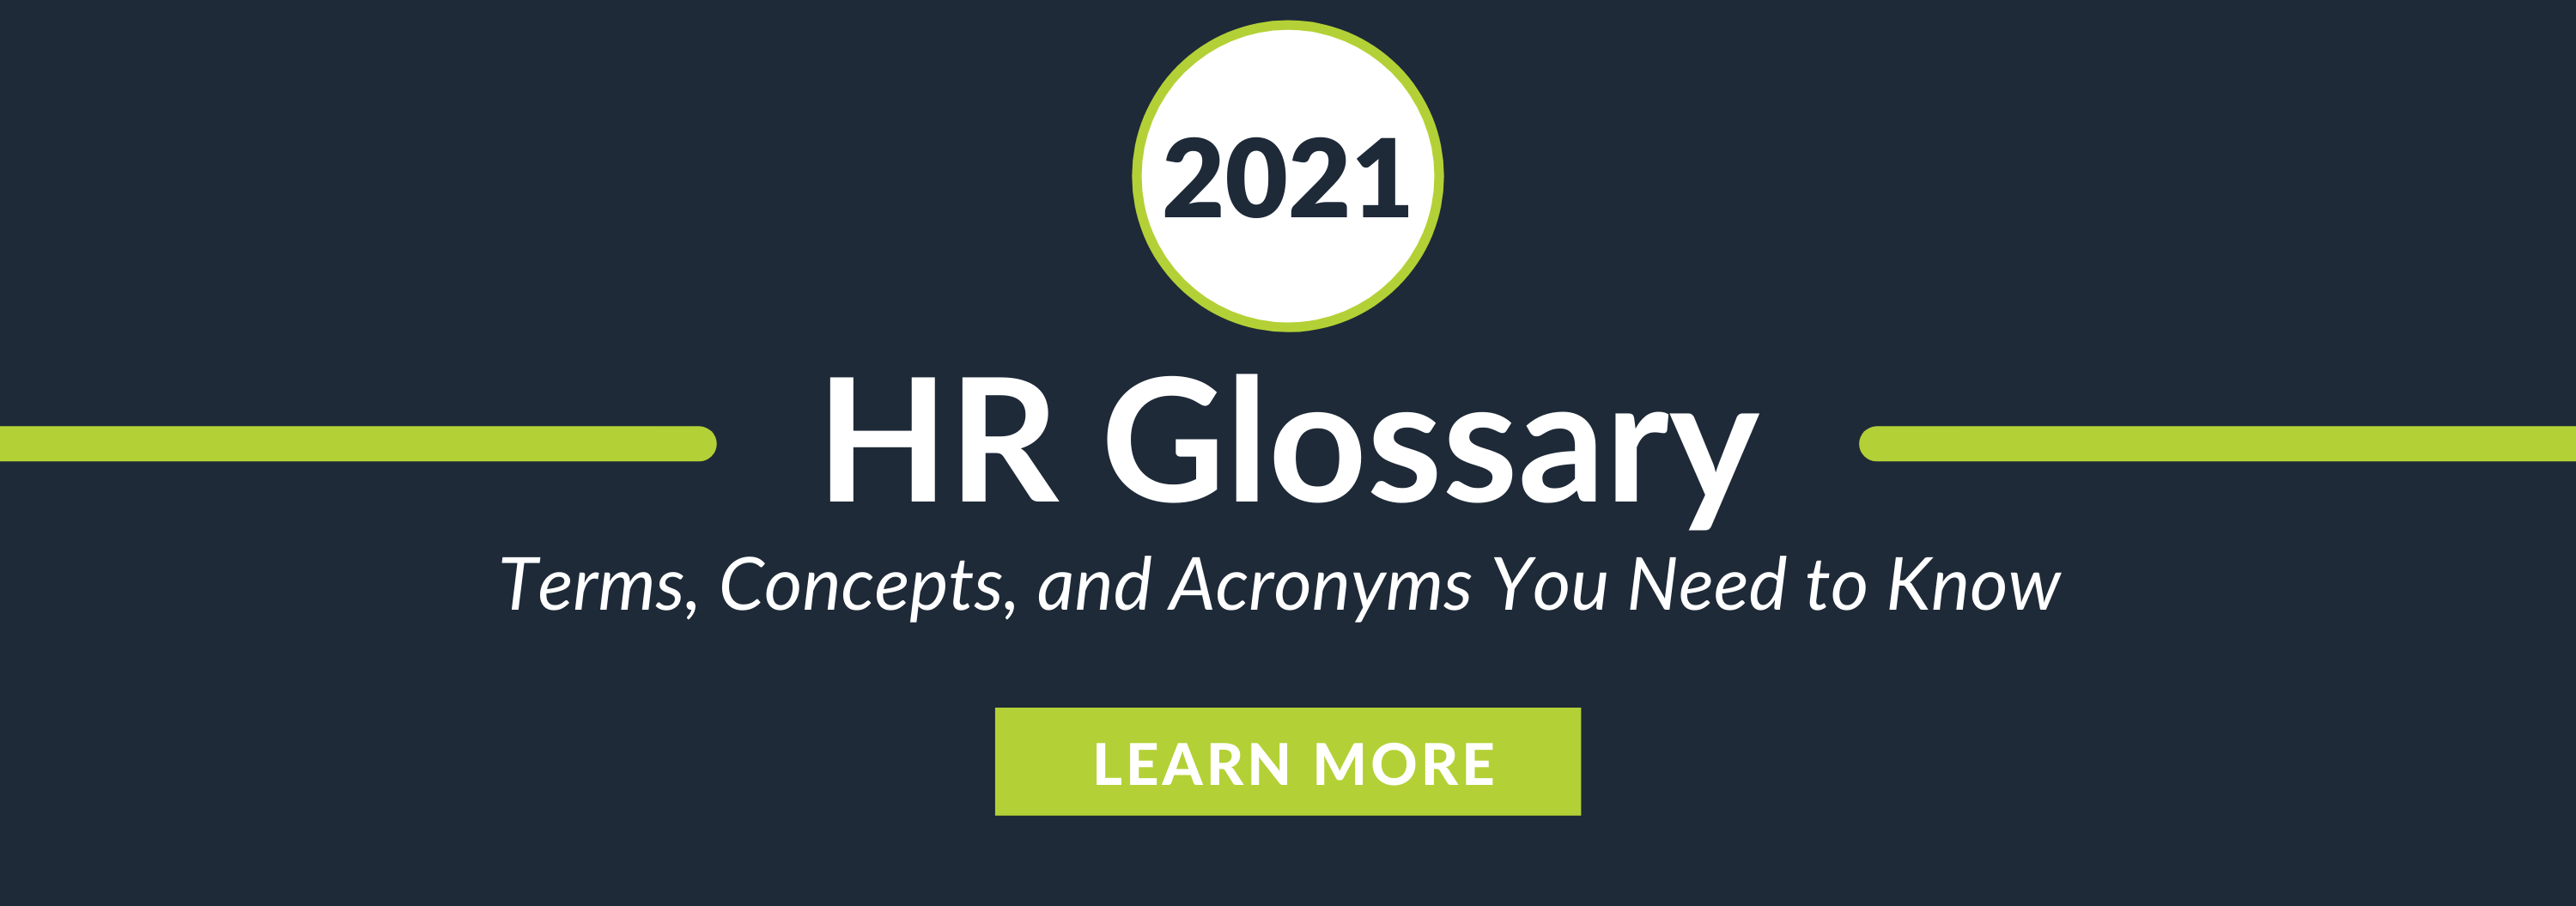 HR Glossary: Terms, Concepts, and Acronyms You Need to Know